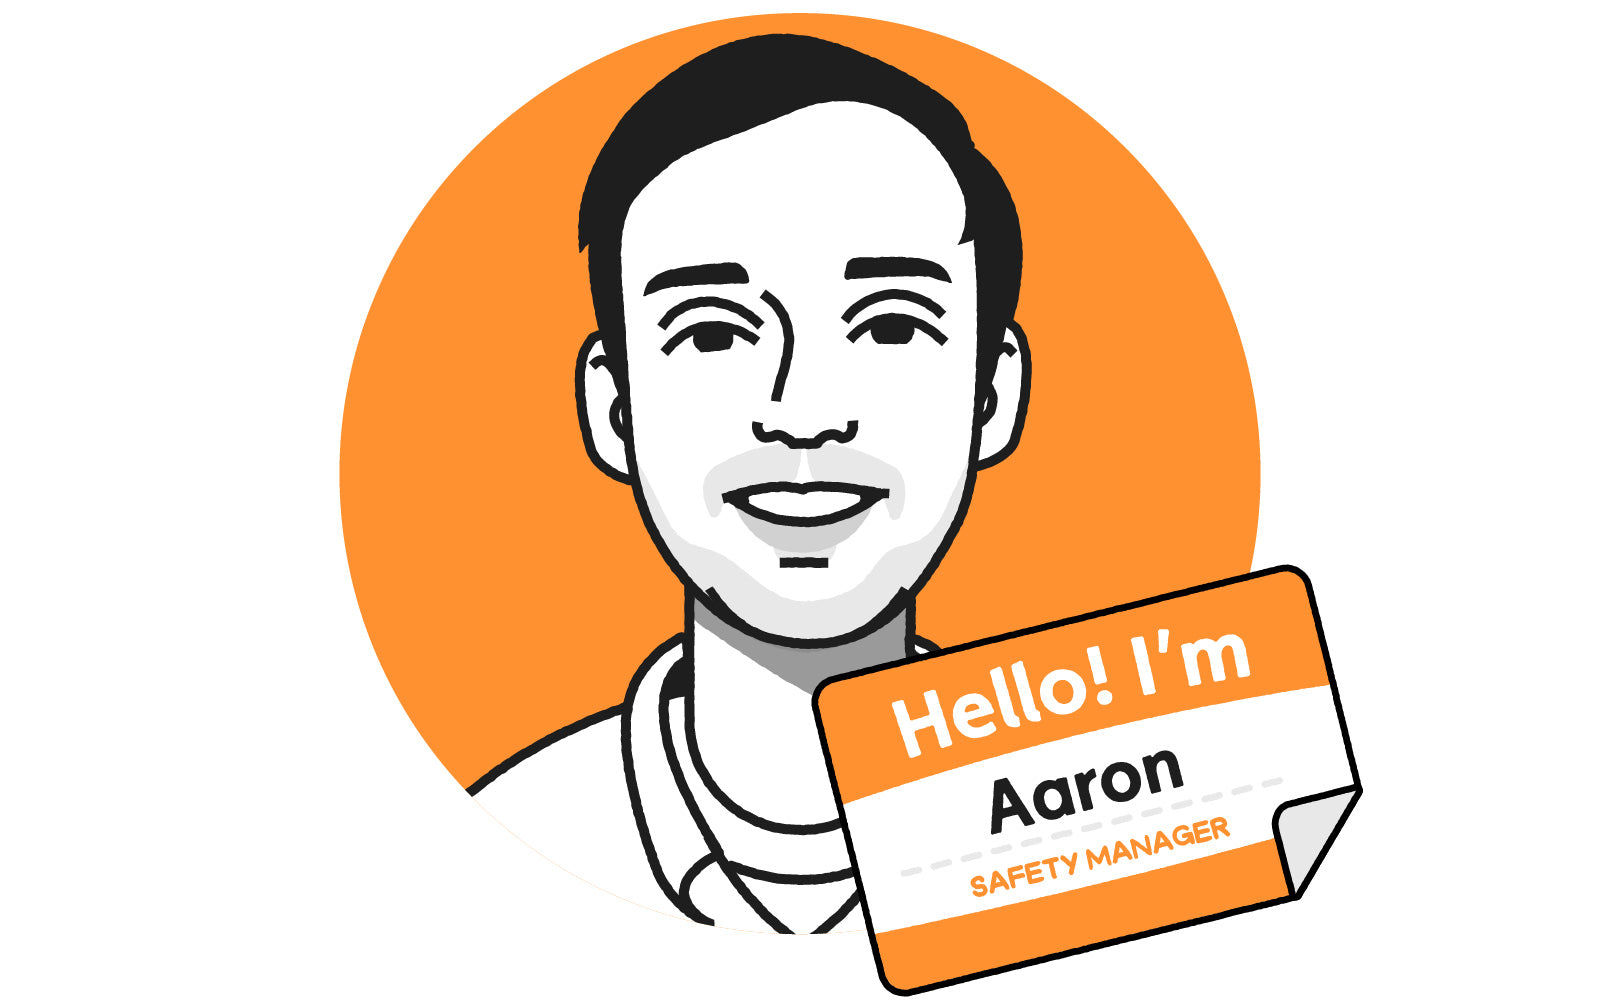 Illustrated headshot of man wearing collared shirt, with name tag that says Hello! I'm Aaron, Safety Manager